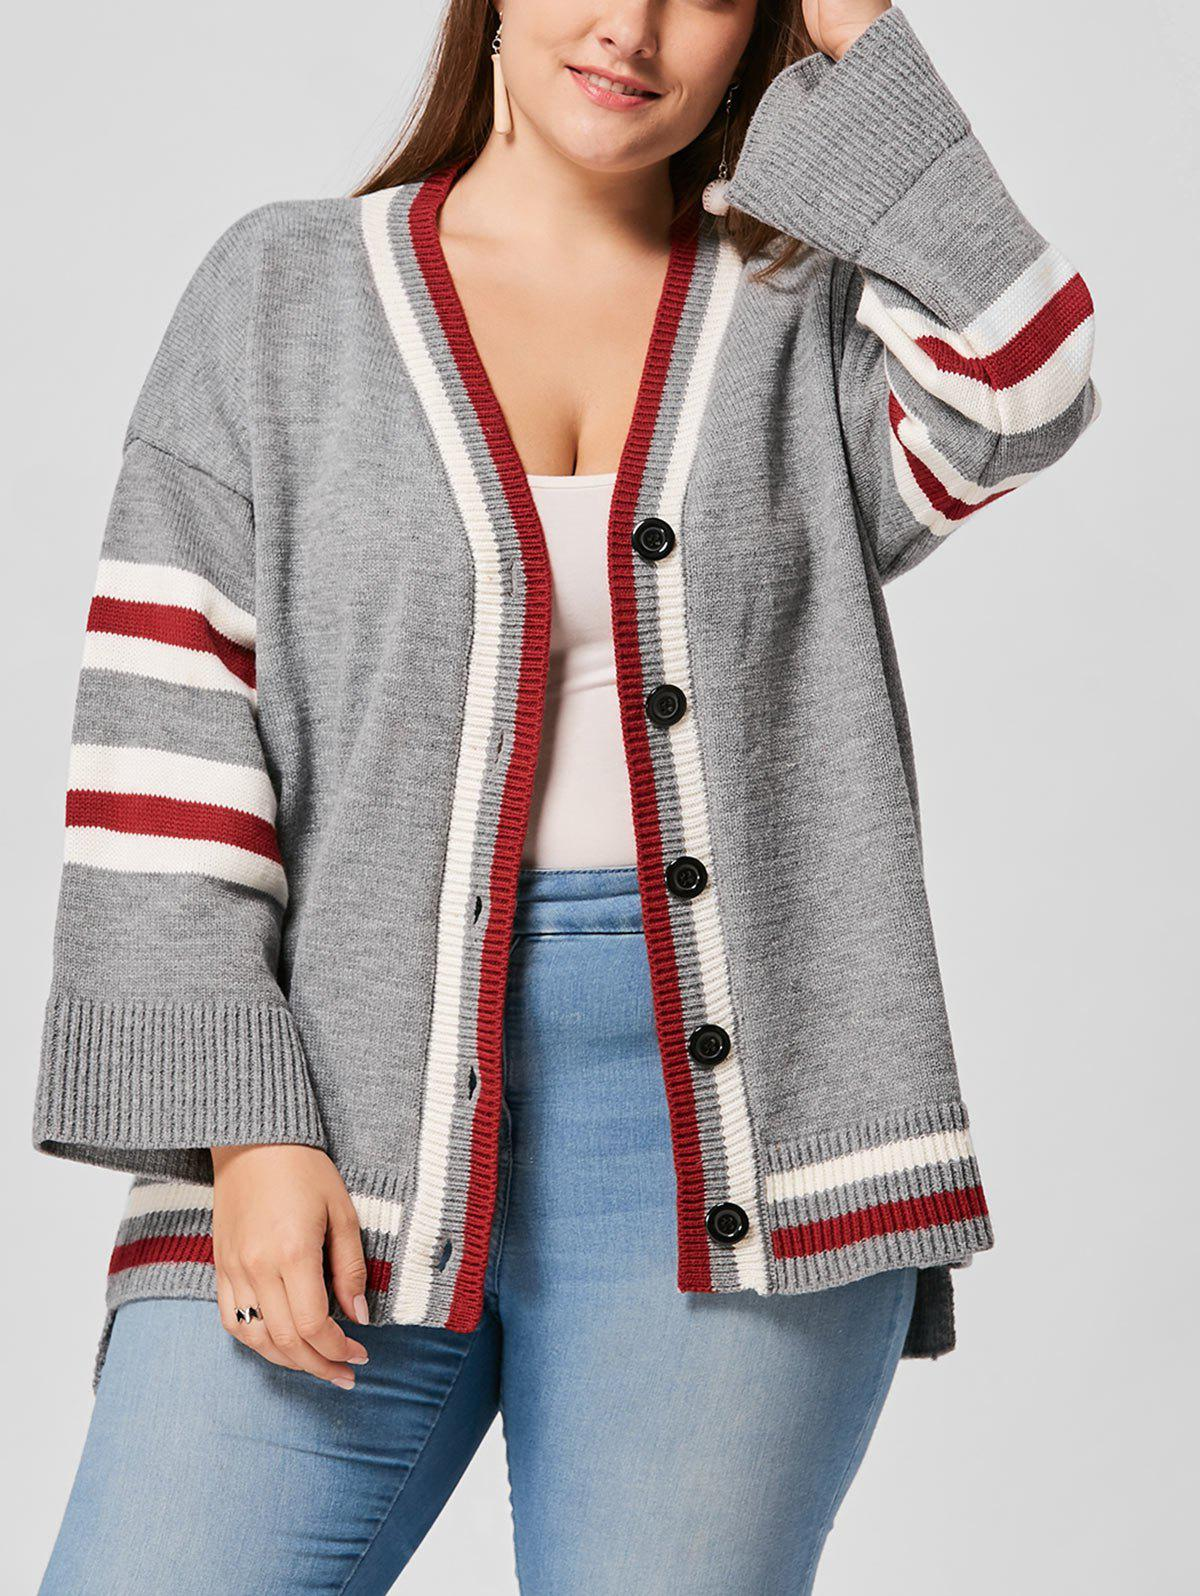 Plus Size Drop Shoulder Striped CardiganWOMEN<br><br>Size: ONE SIZE; Color: GRAY; Type: Cardigans; Material: Acrylic,Polyester; Sleeve Length: Full; Collar: V-Neck; Style: Fashion; Season: Fall; Pattern Type: Striped; Weight: 0.6500kg; Package Contents: 1 x Cardigan;